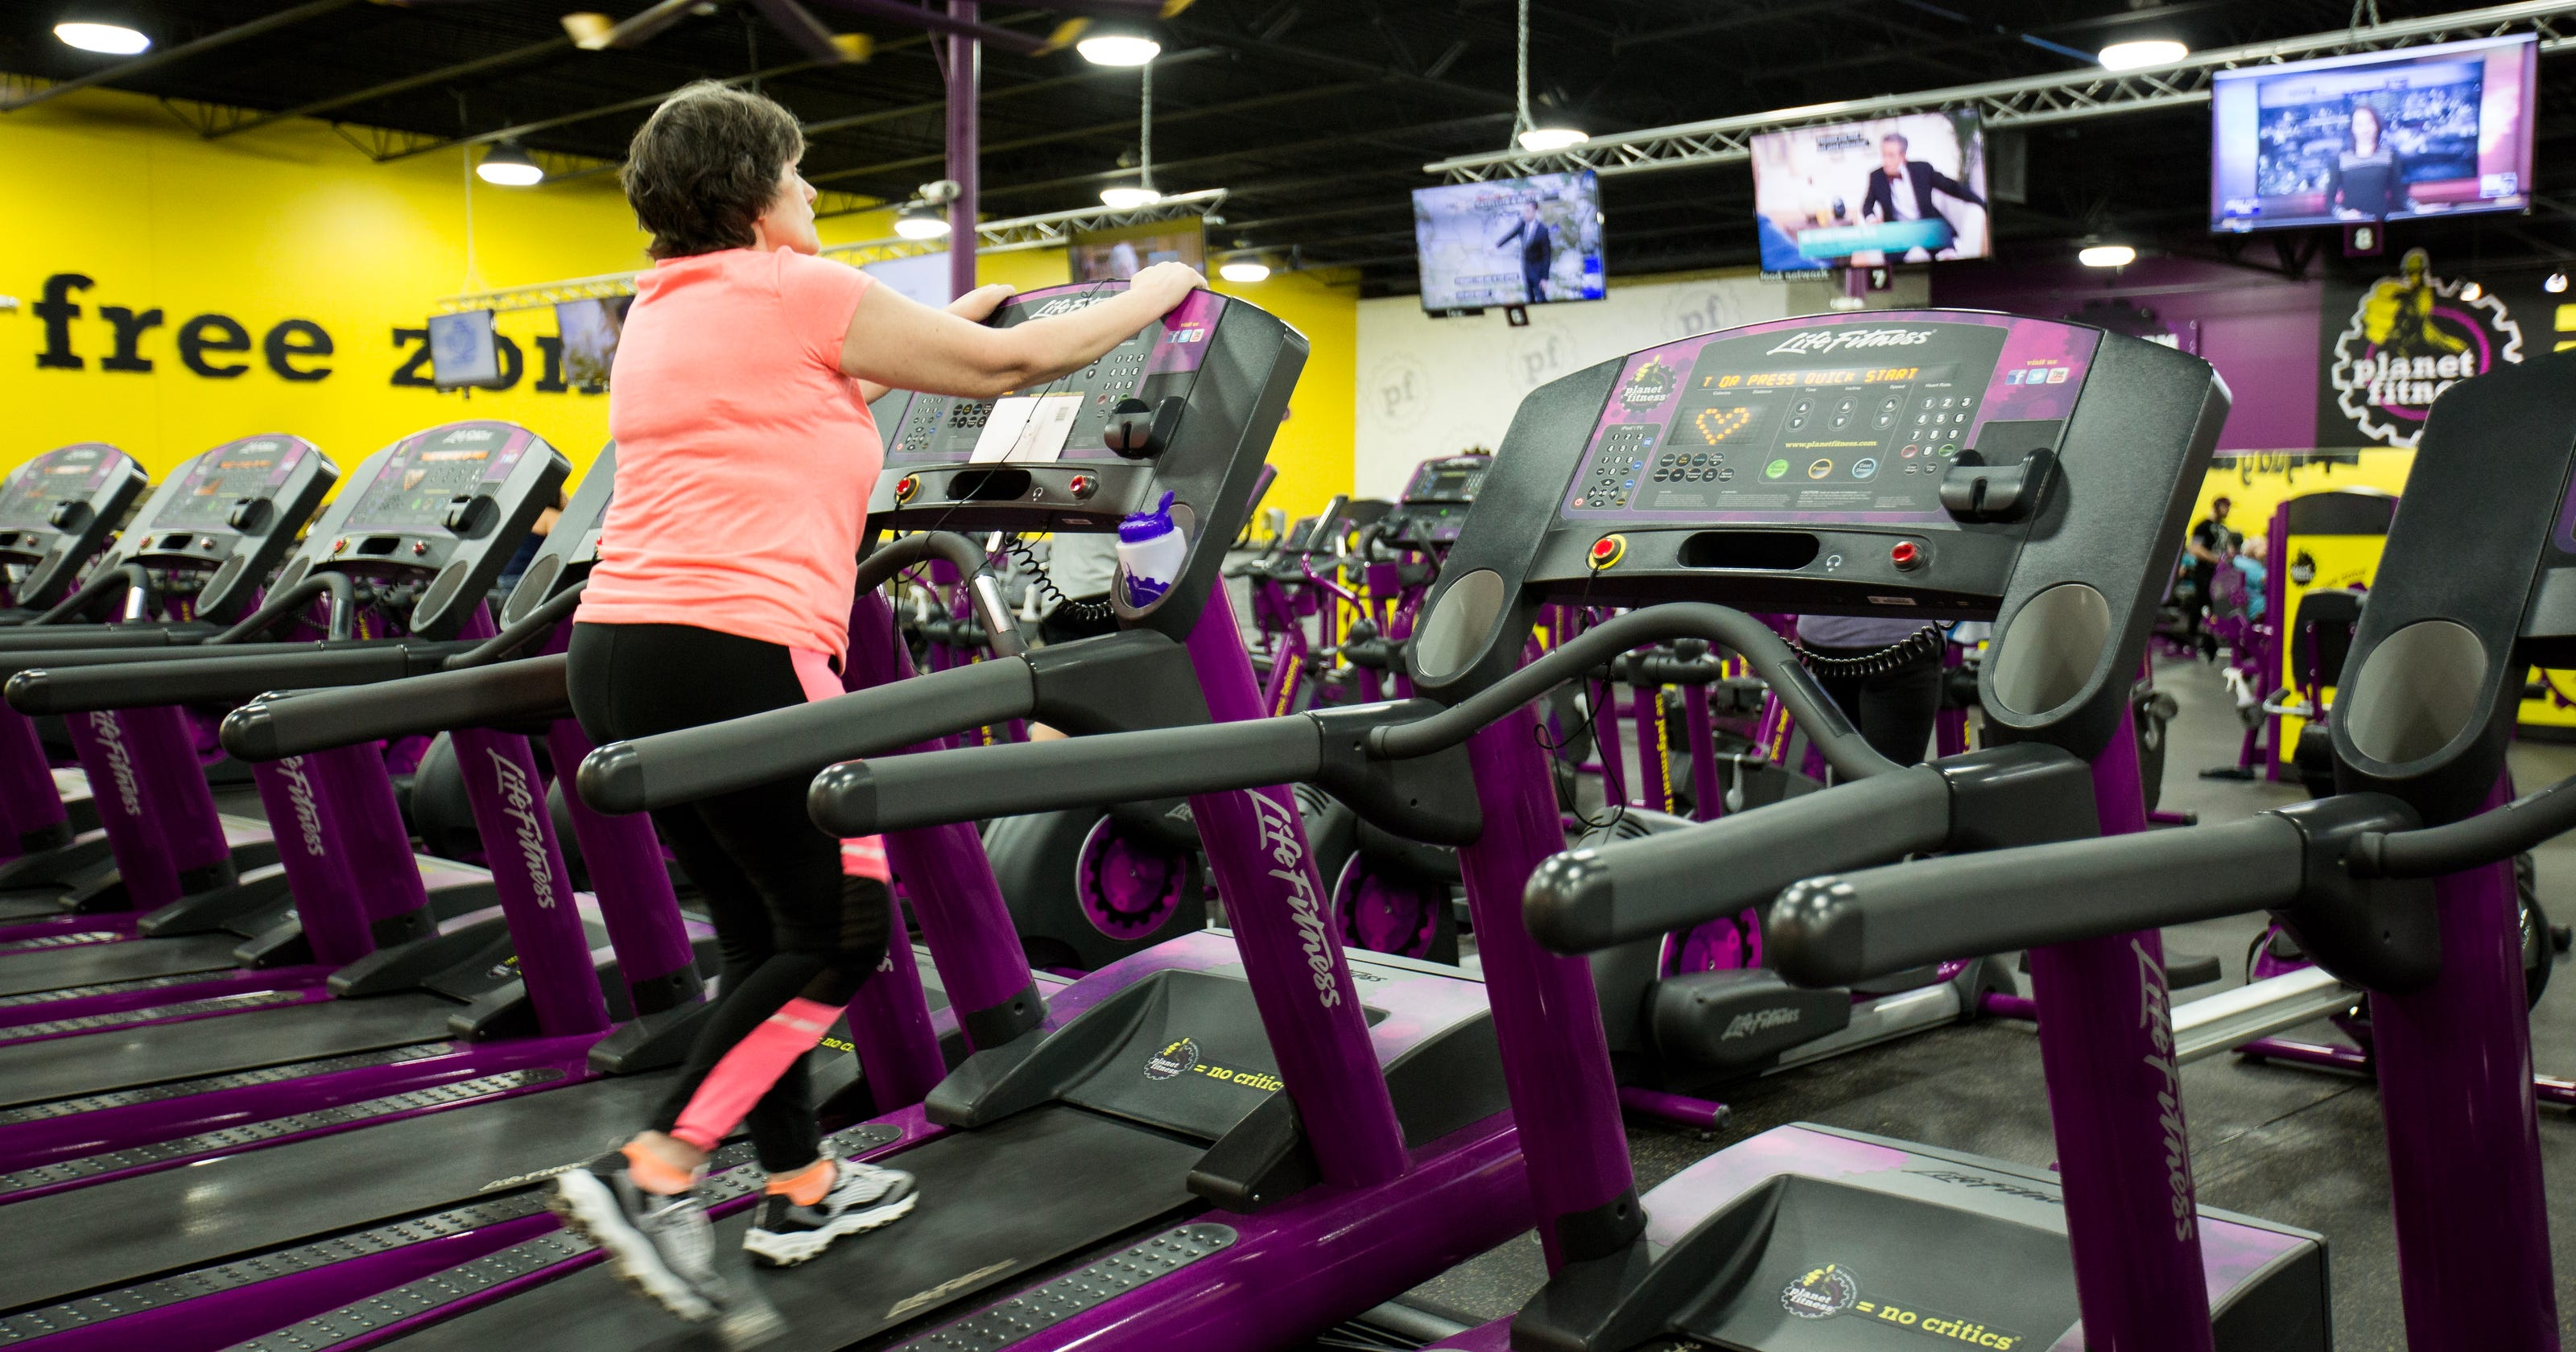 Delta twp woman walks away loneliness at planet fitness gym